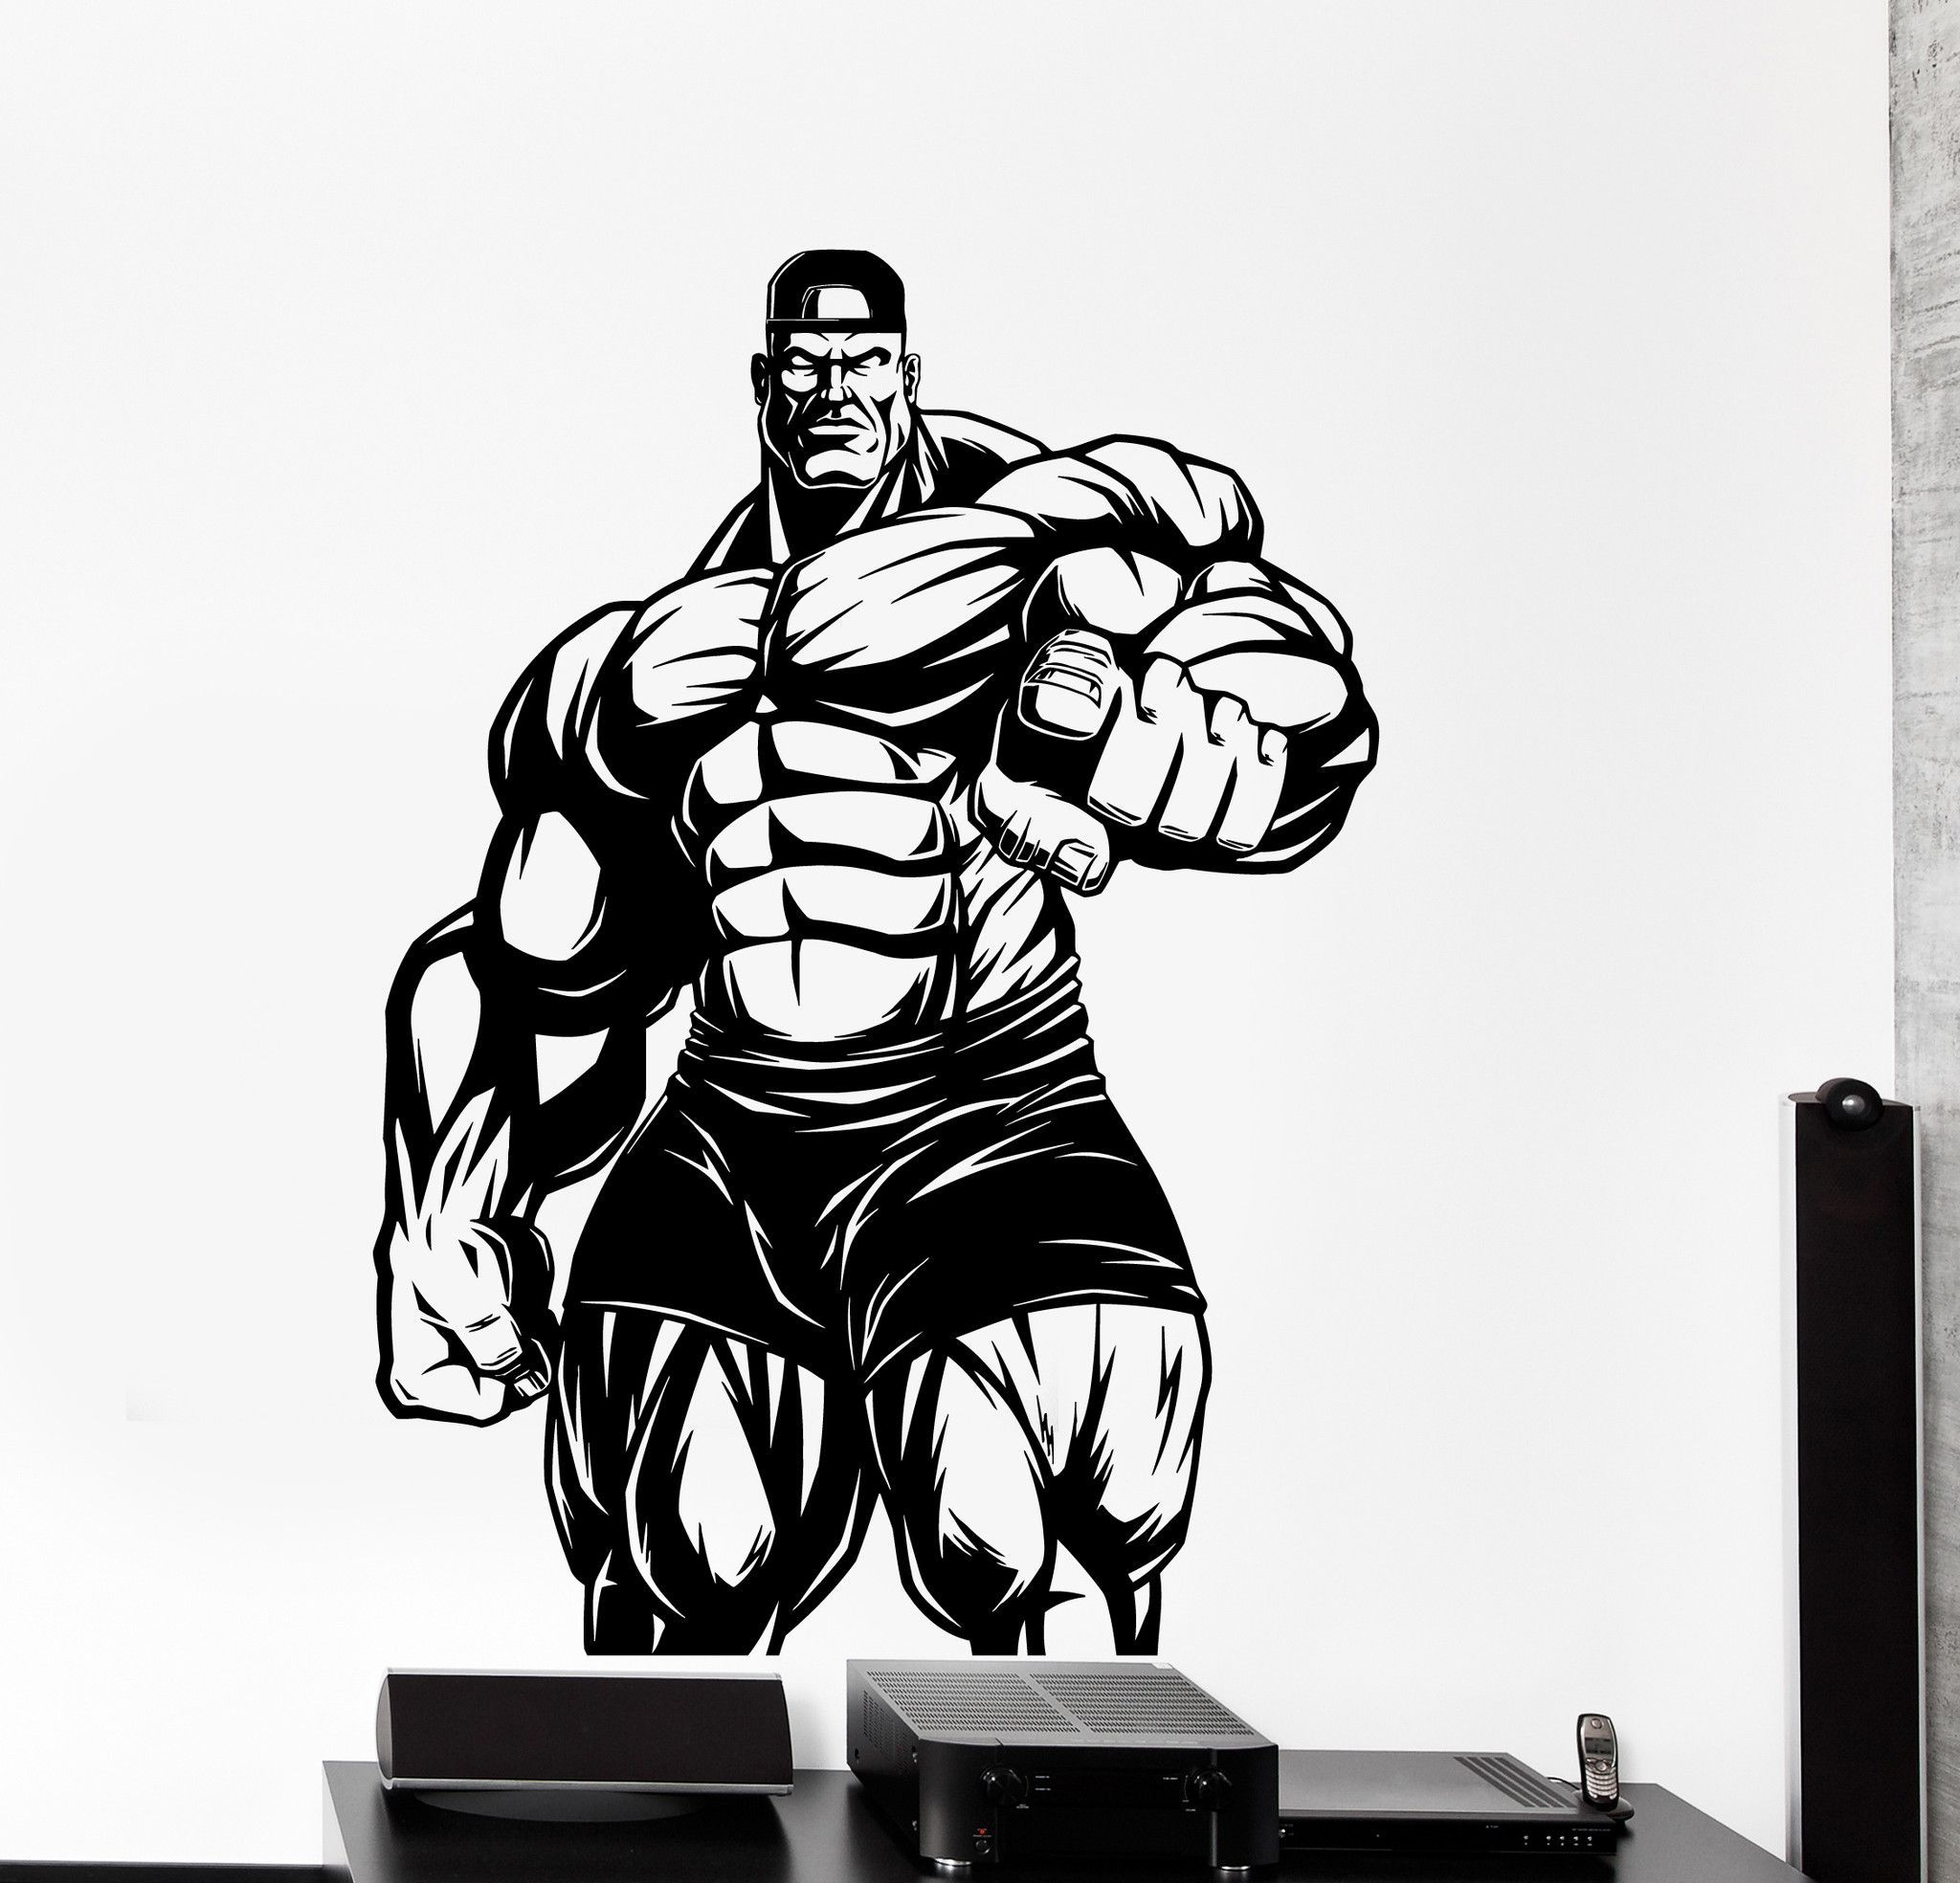 Wall Vinyl Decal Bodybuilding Bodybuilder Iron Sport Home Interior Decor  z4226 e80b146fa03